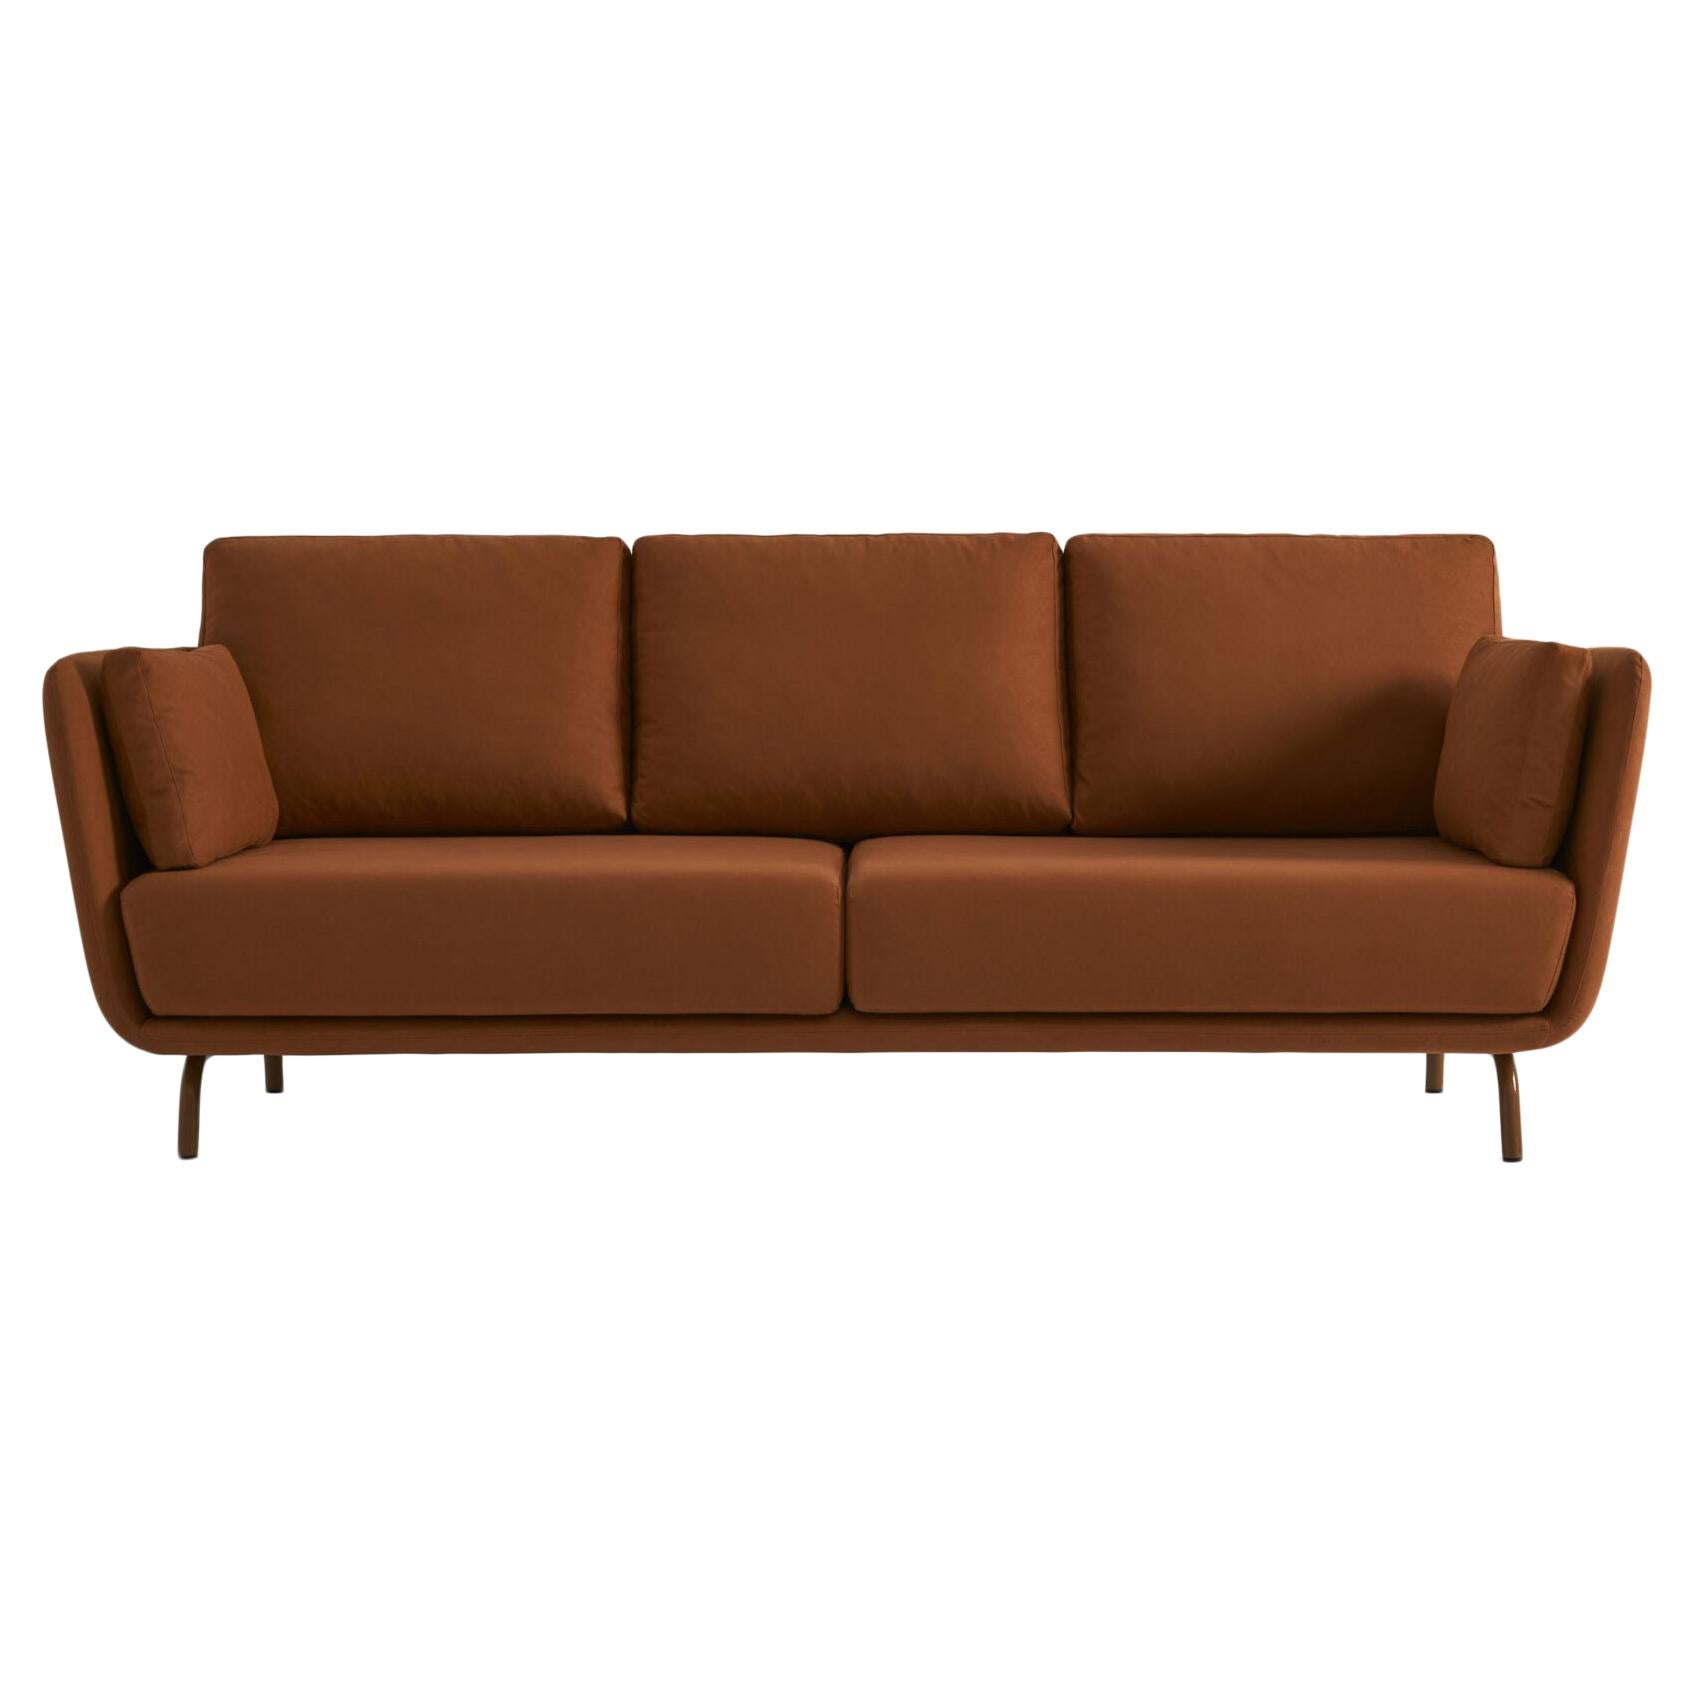 Swan Sofa with Metal Legs by Pepe Albargues